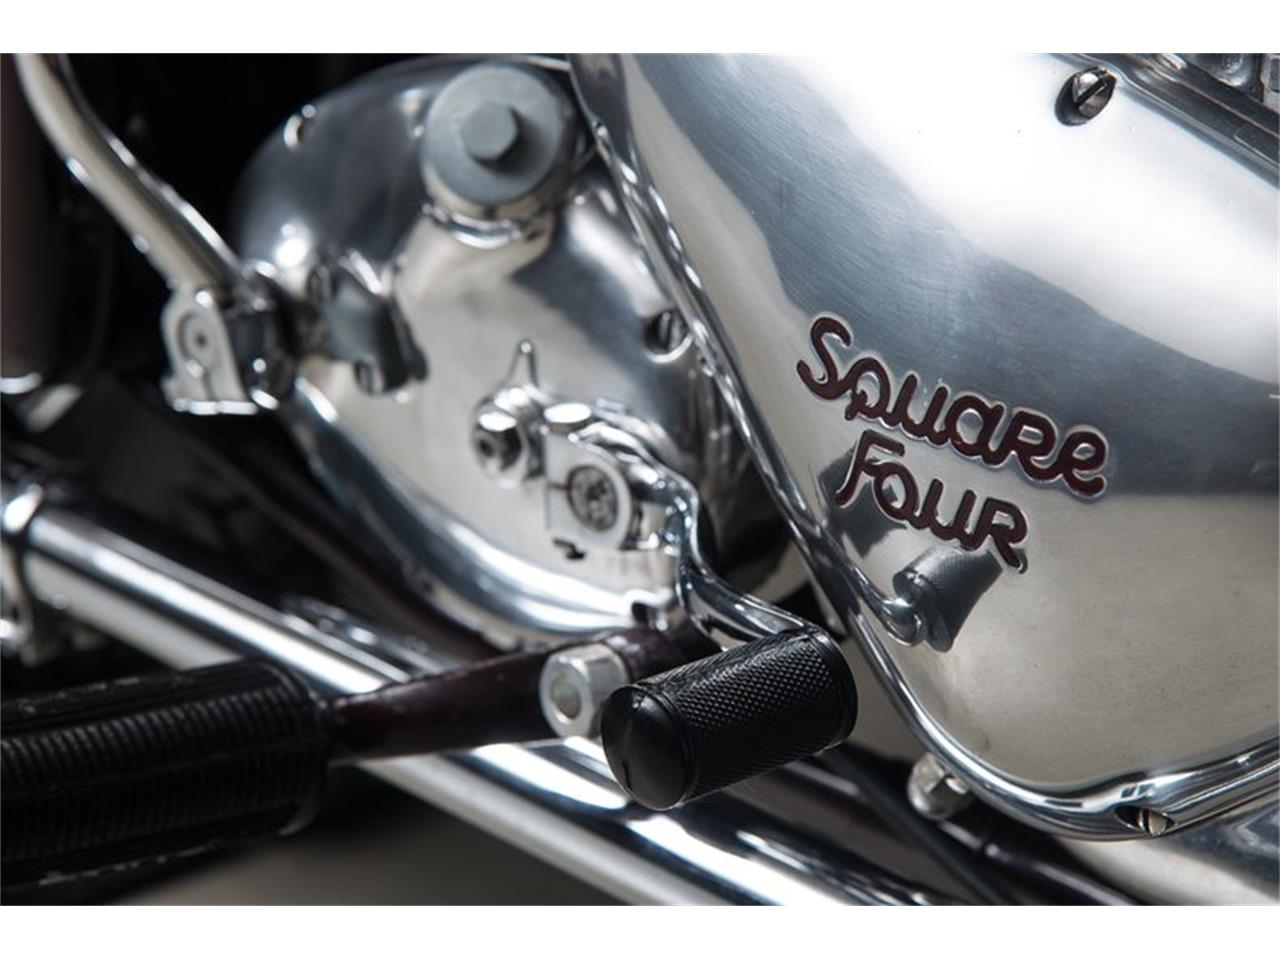 Large Picture of Classic 1953 Square Four located in Scotts Valley California Auction Vehicle Offered by Canepa - G3TZ